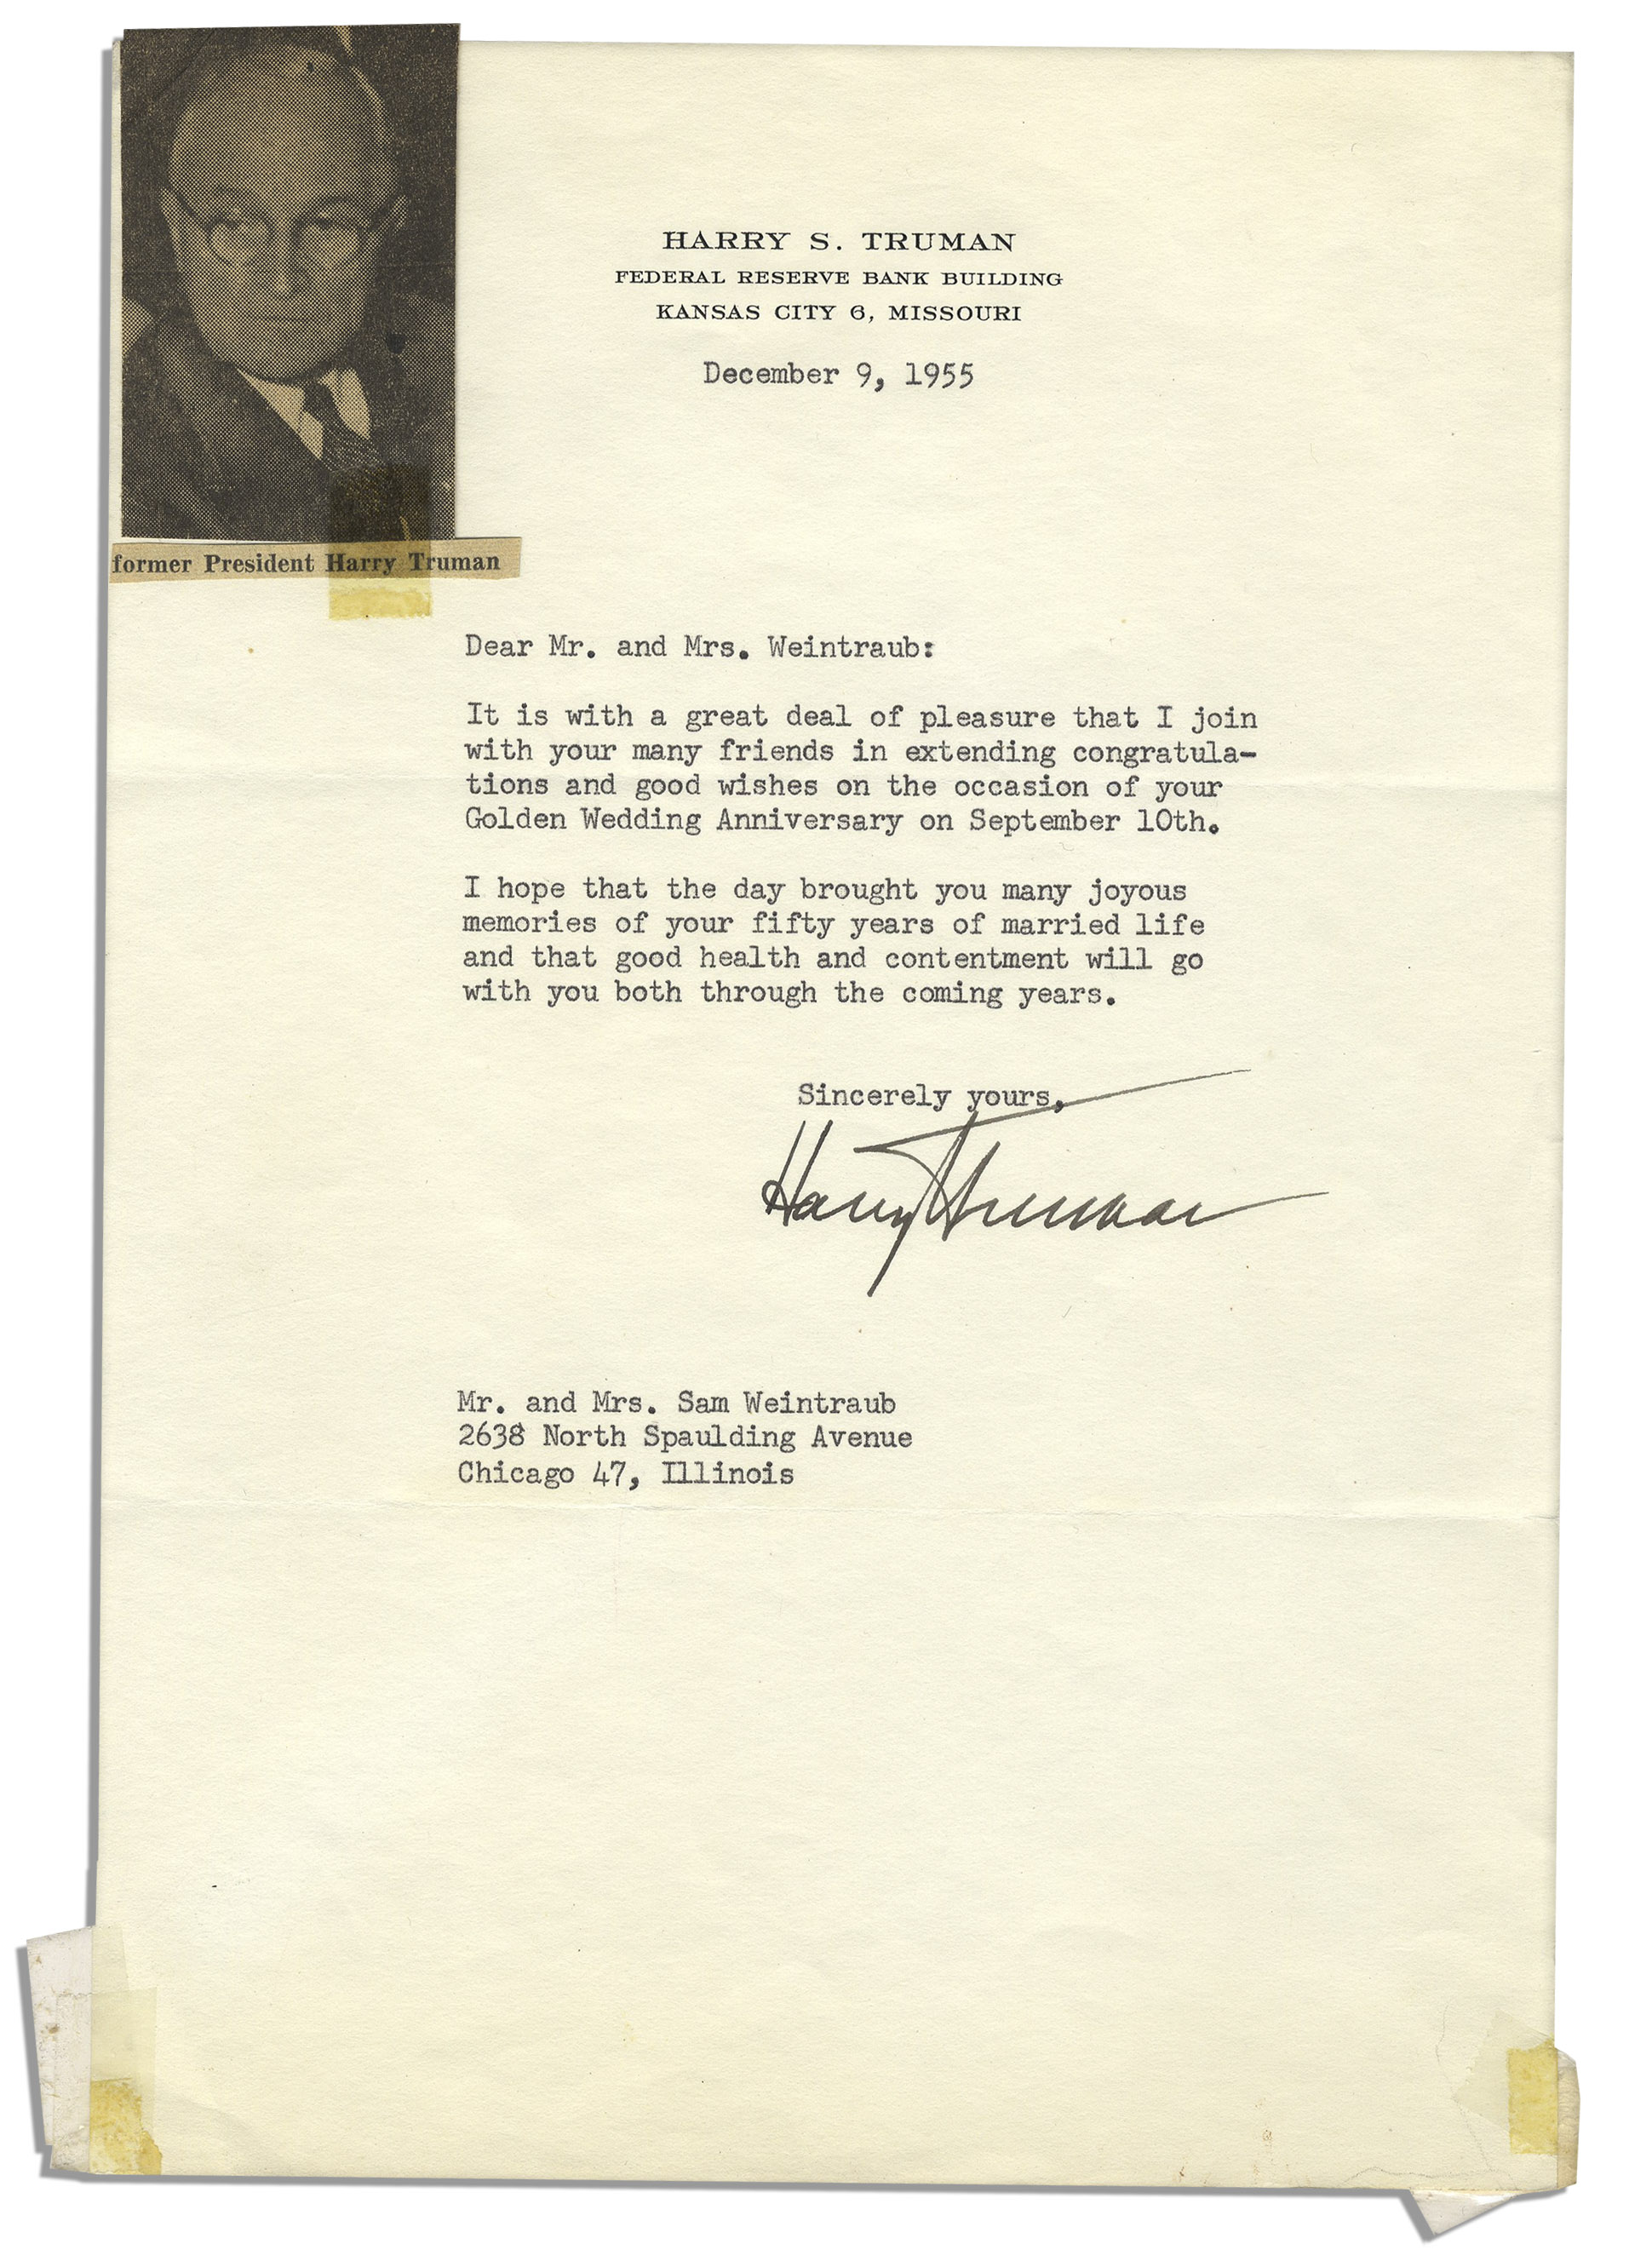 harry s truman typed letter signed from 1955